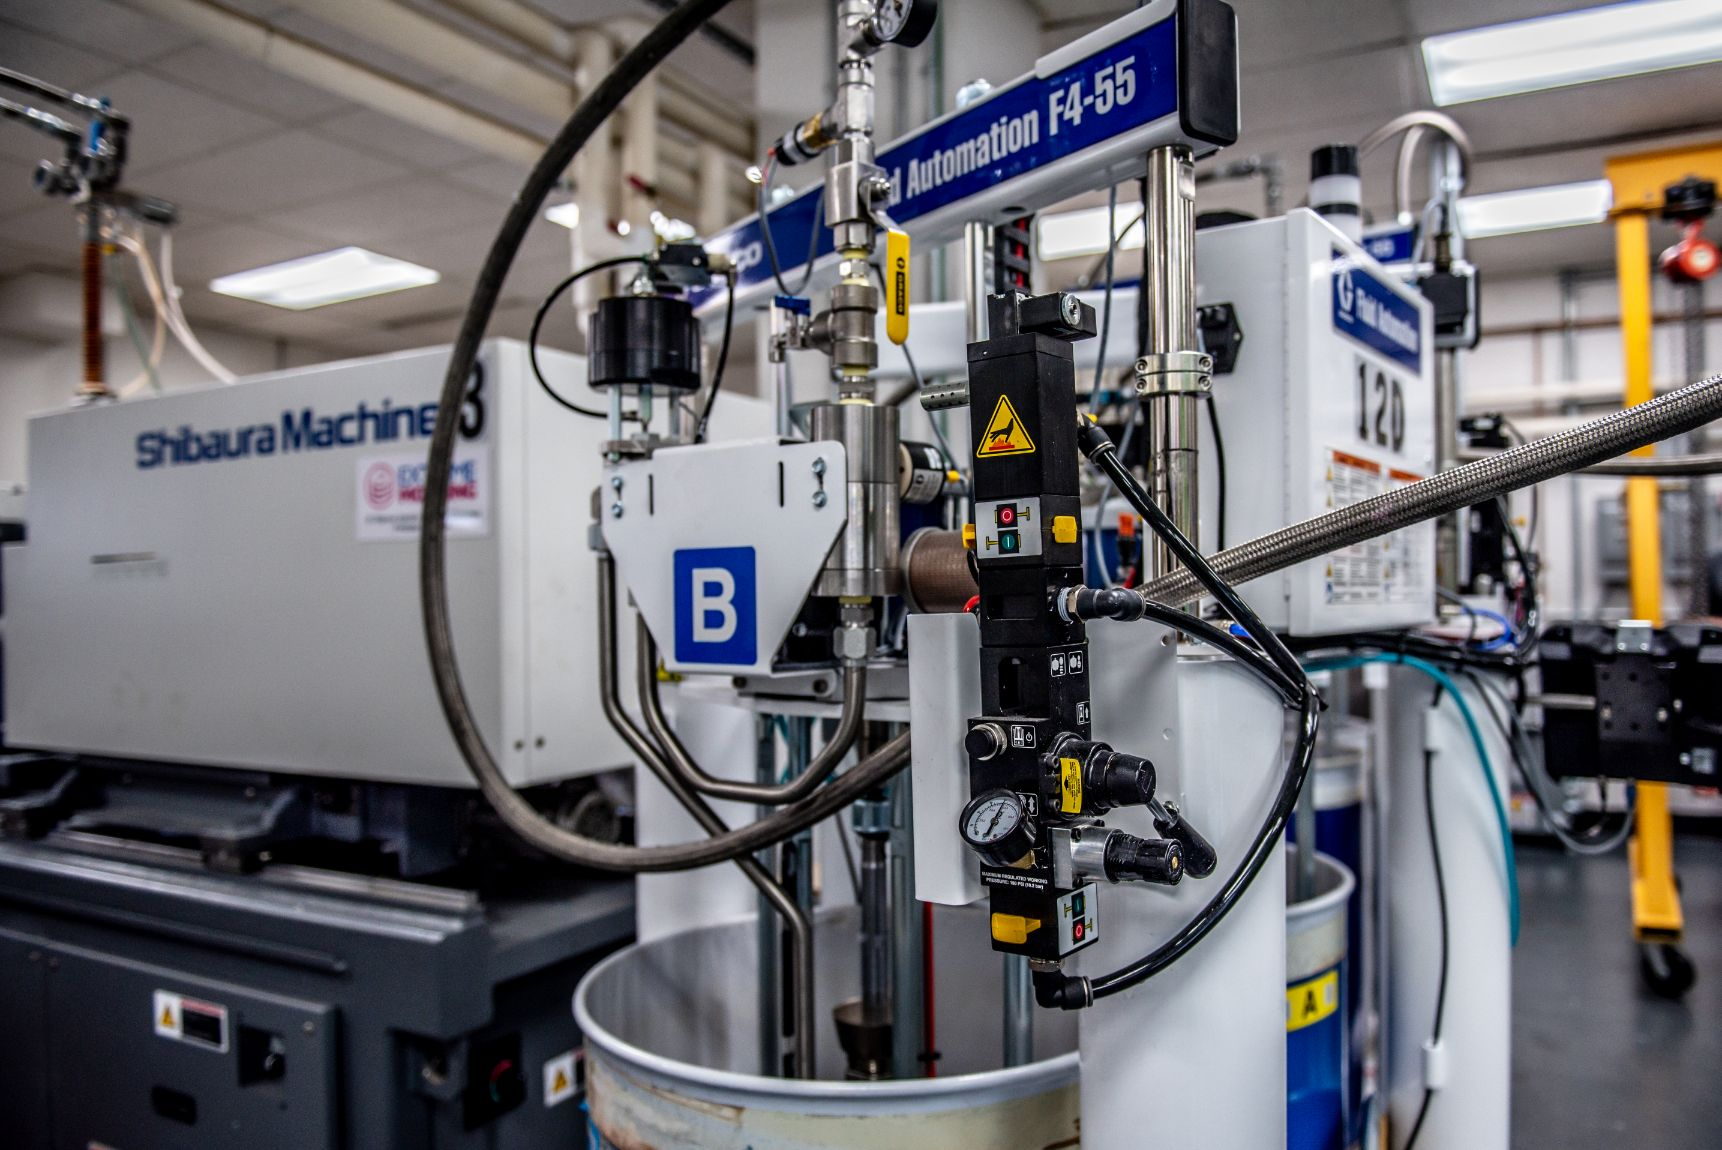 Silicone Injection Molding Machine at Extreme Molding Warehouse in Watervliet NY